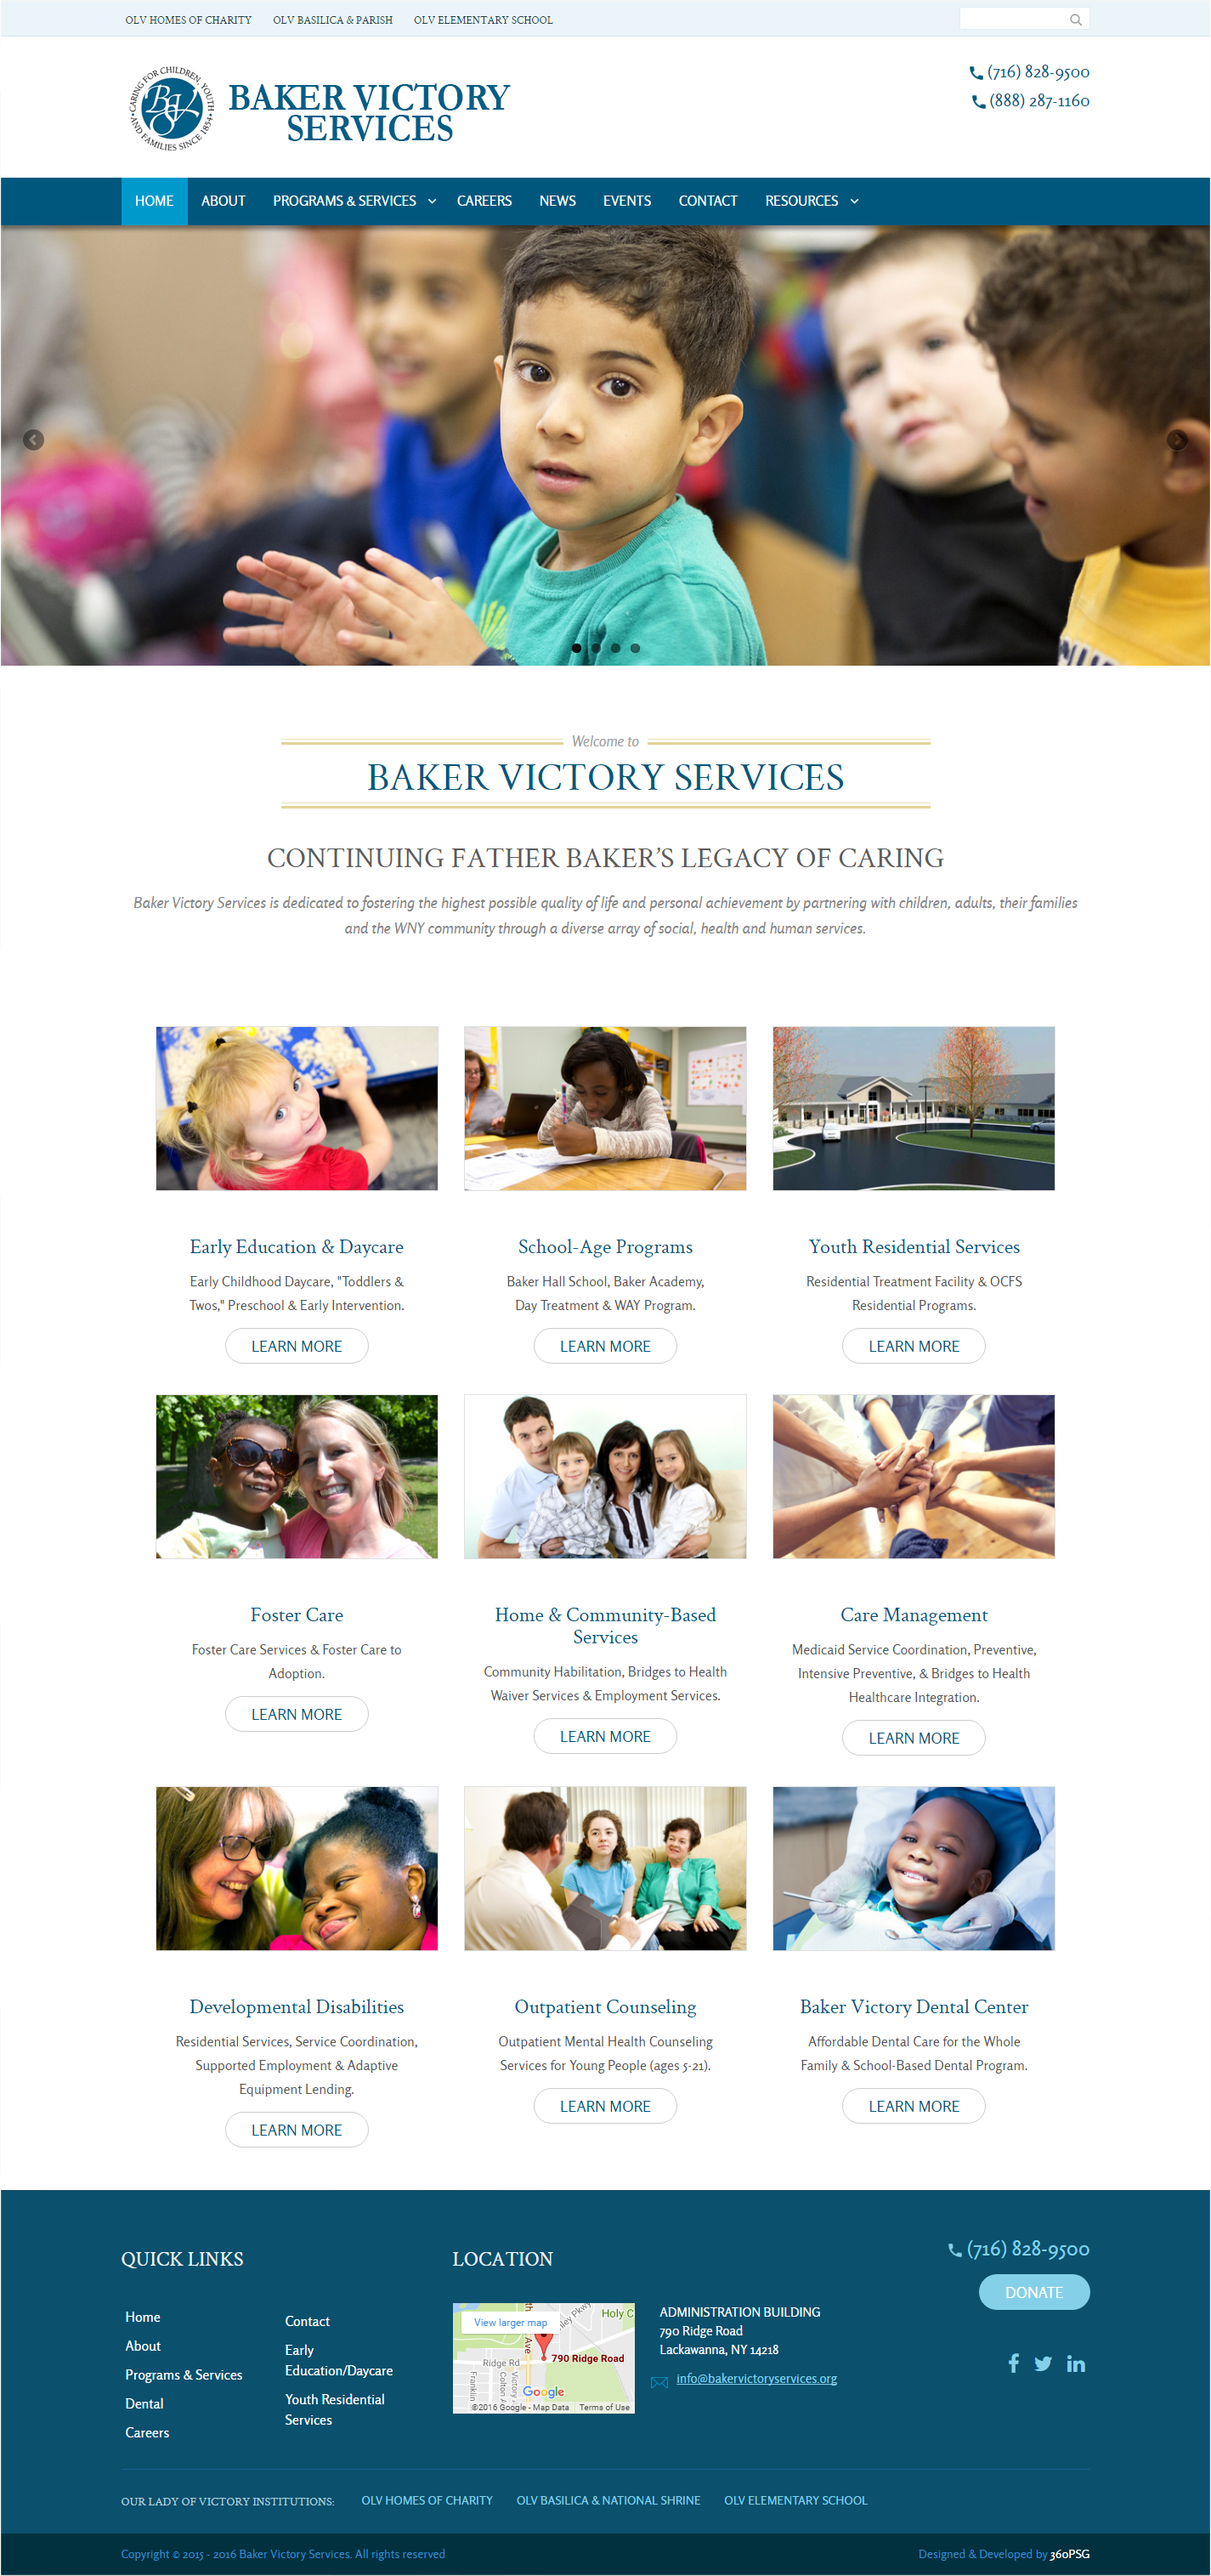 http://www.bakervictoryservices.org/